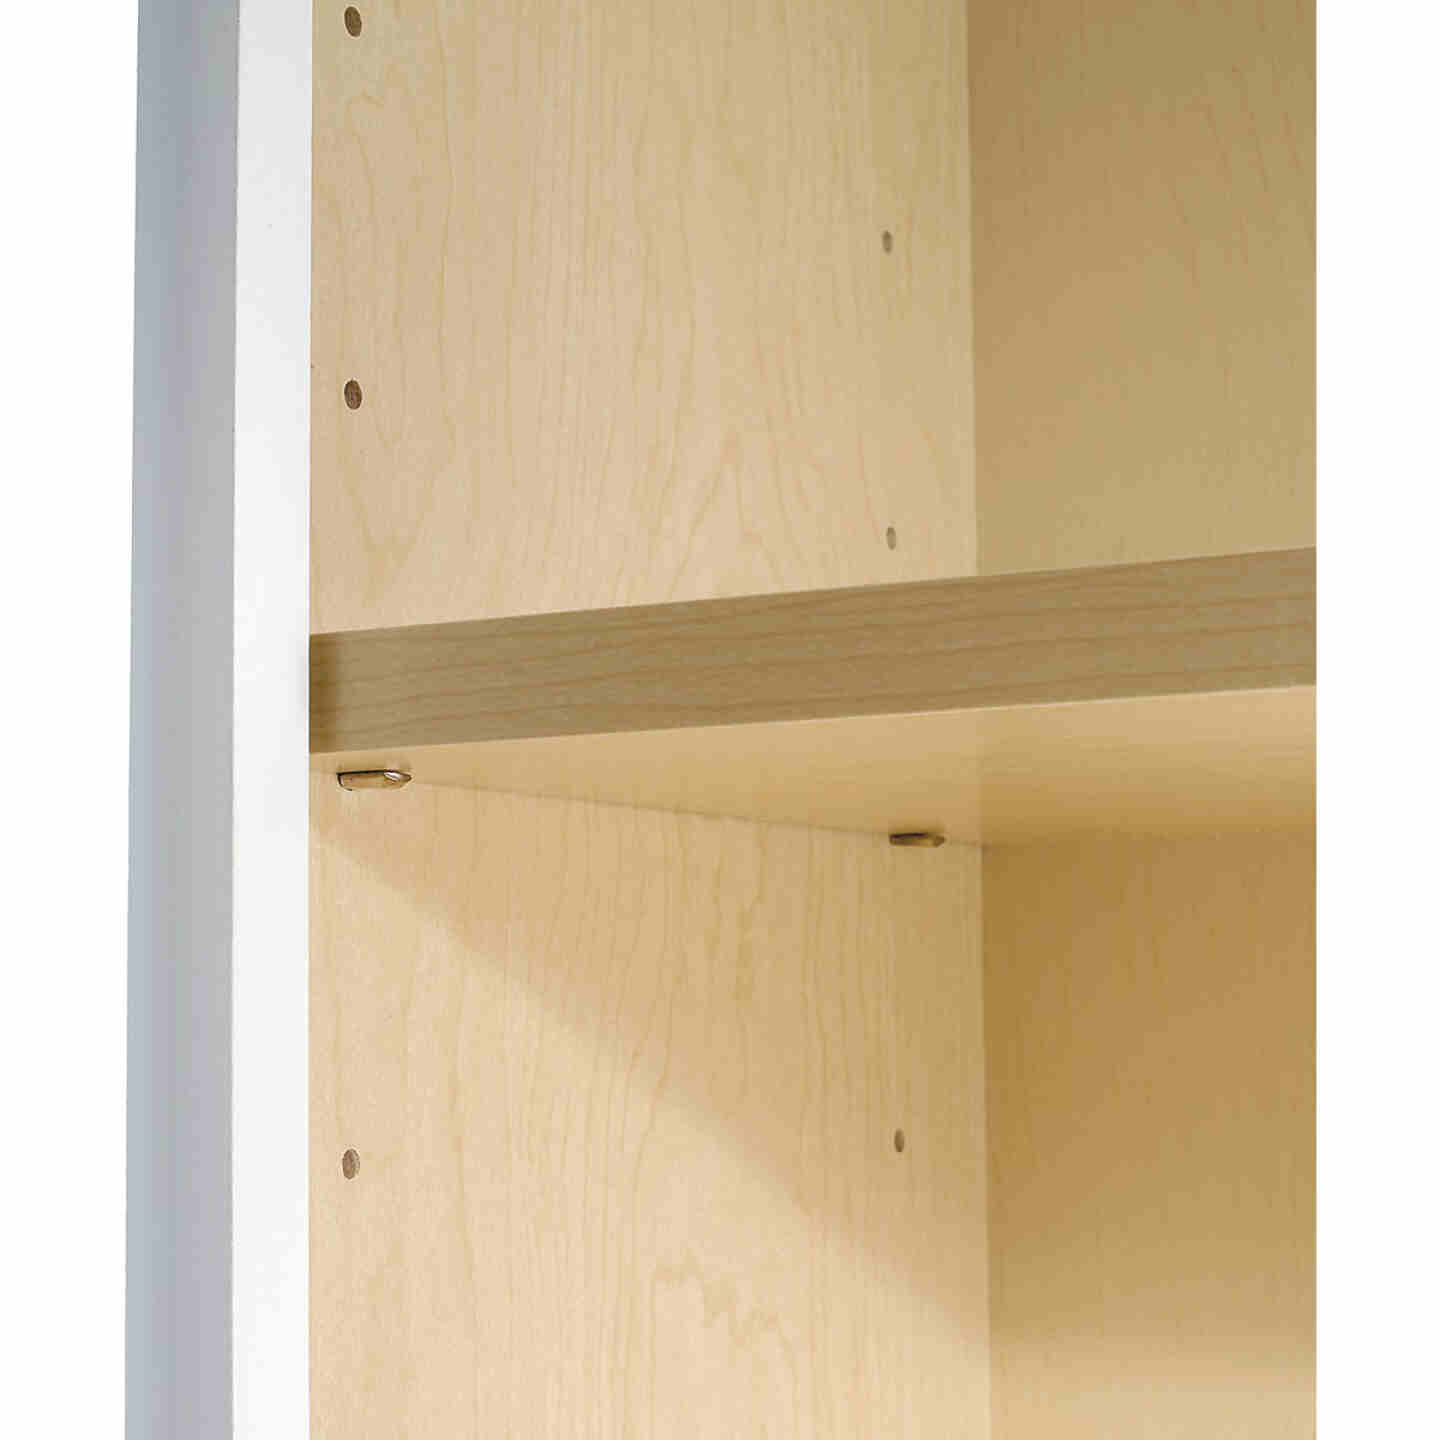 Continental Cabinets Andover Shaker 18 In. W x 30 In. H x 12 In. D White Thermofoil Wall Kitchen Cabinet Image 4